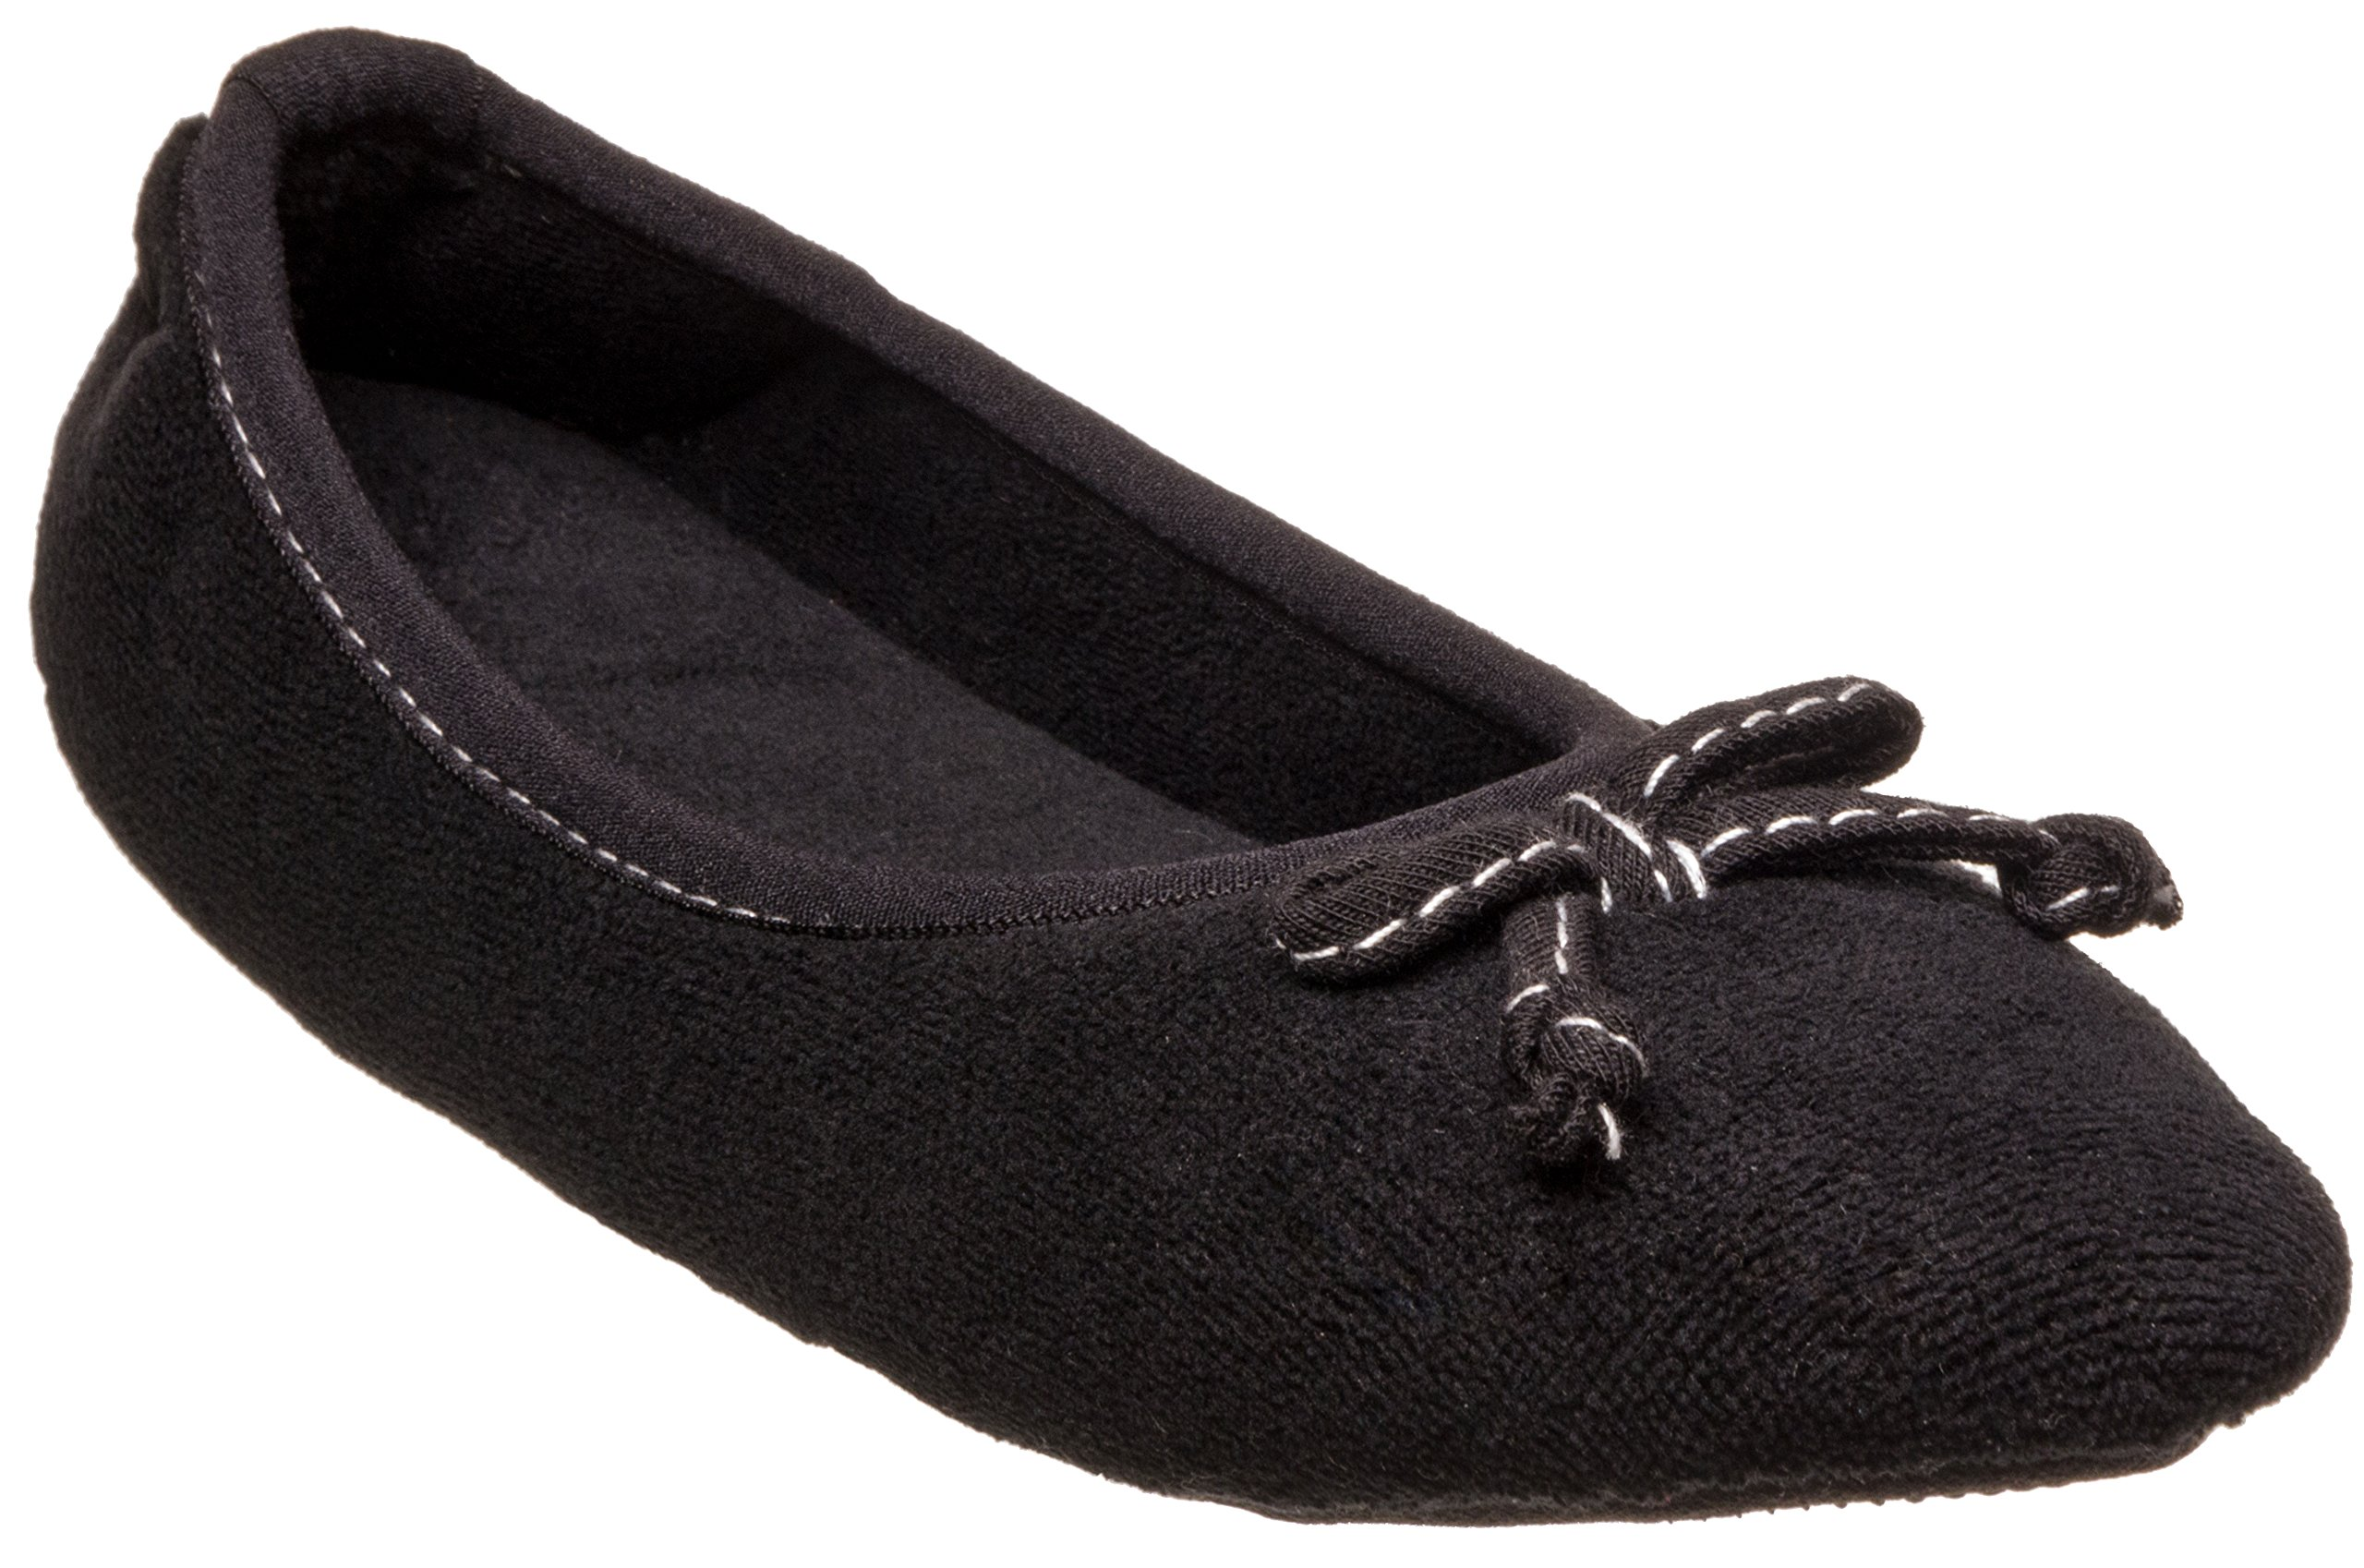 ISOTONER Womens Microterry Ada Ballerina Black Large 8-9